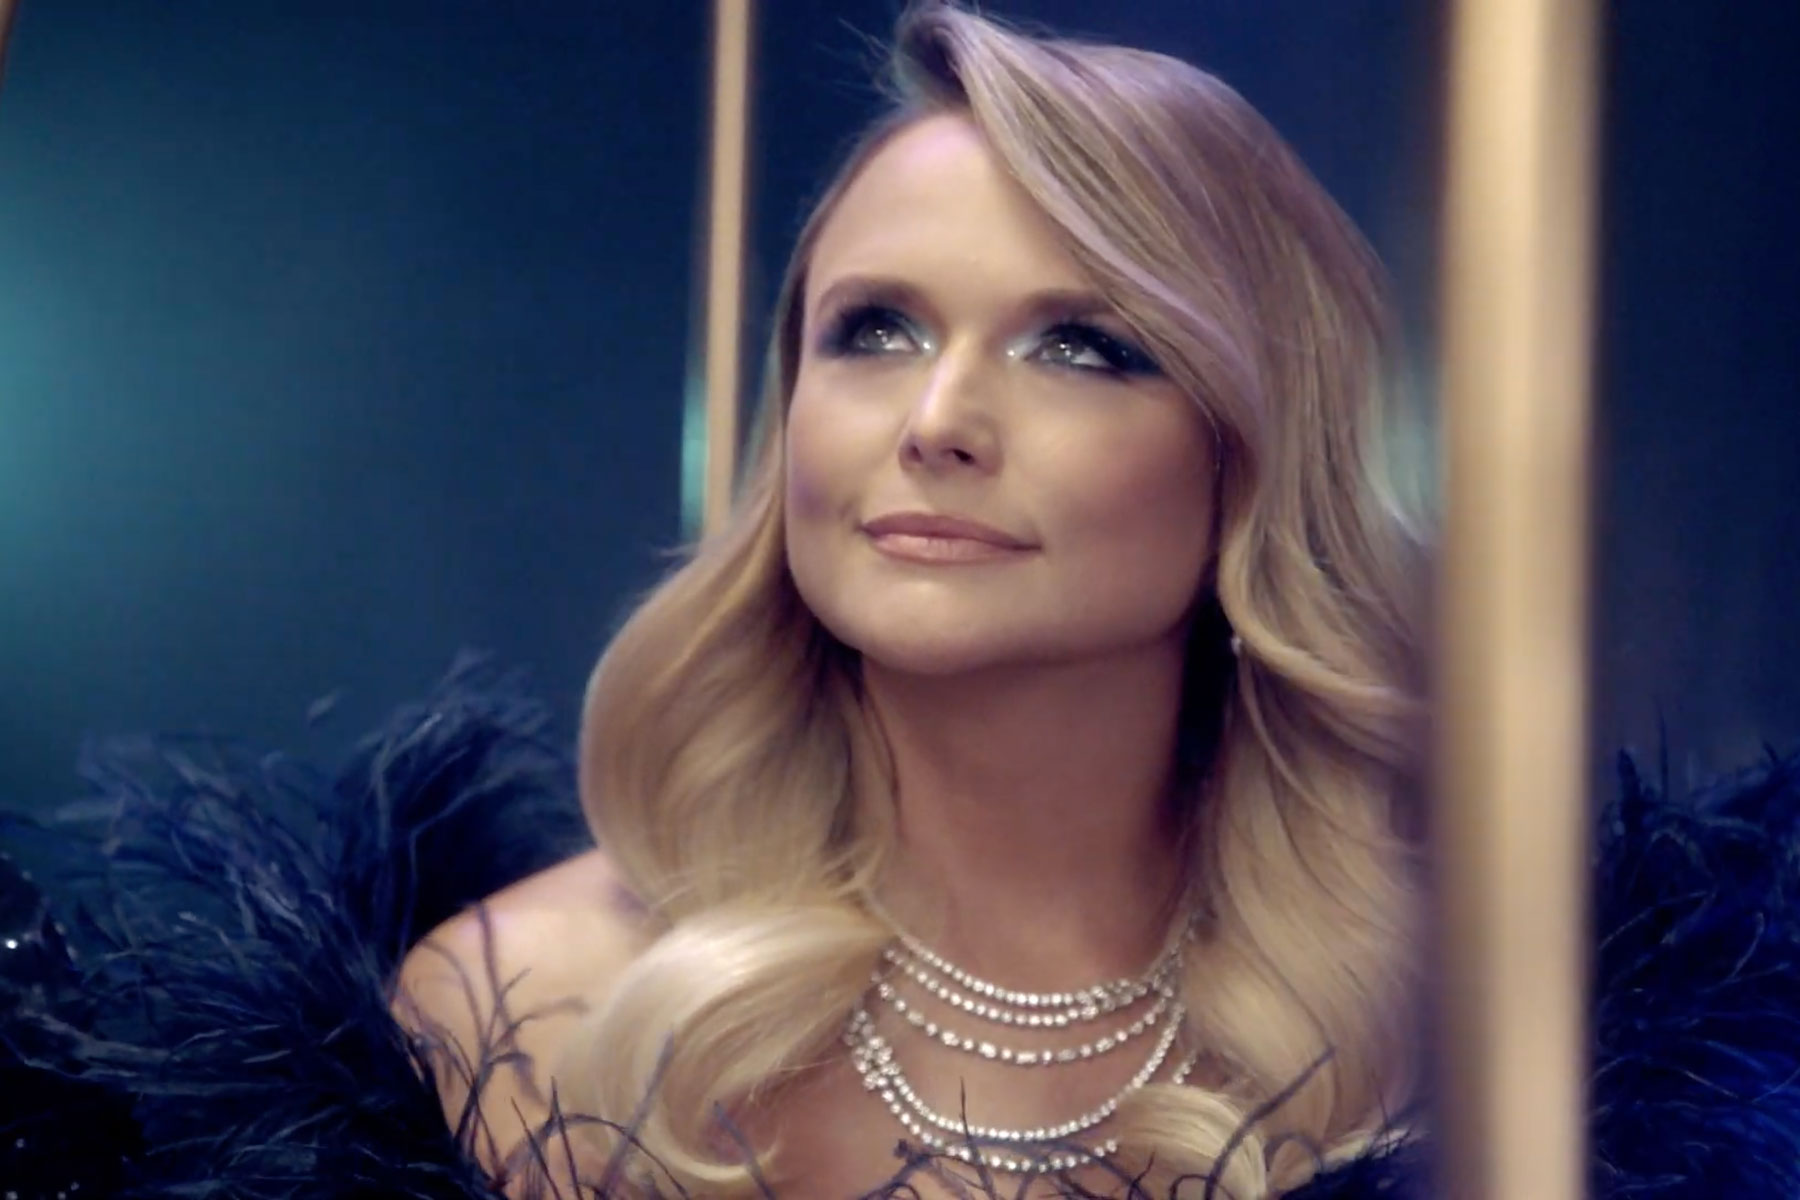 Miranda Lambert Performs Inside Giant Birdcage in 'Bluebird' Video ...